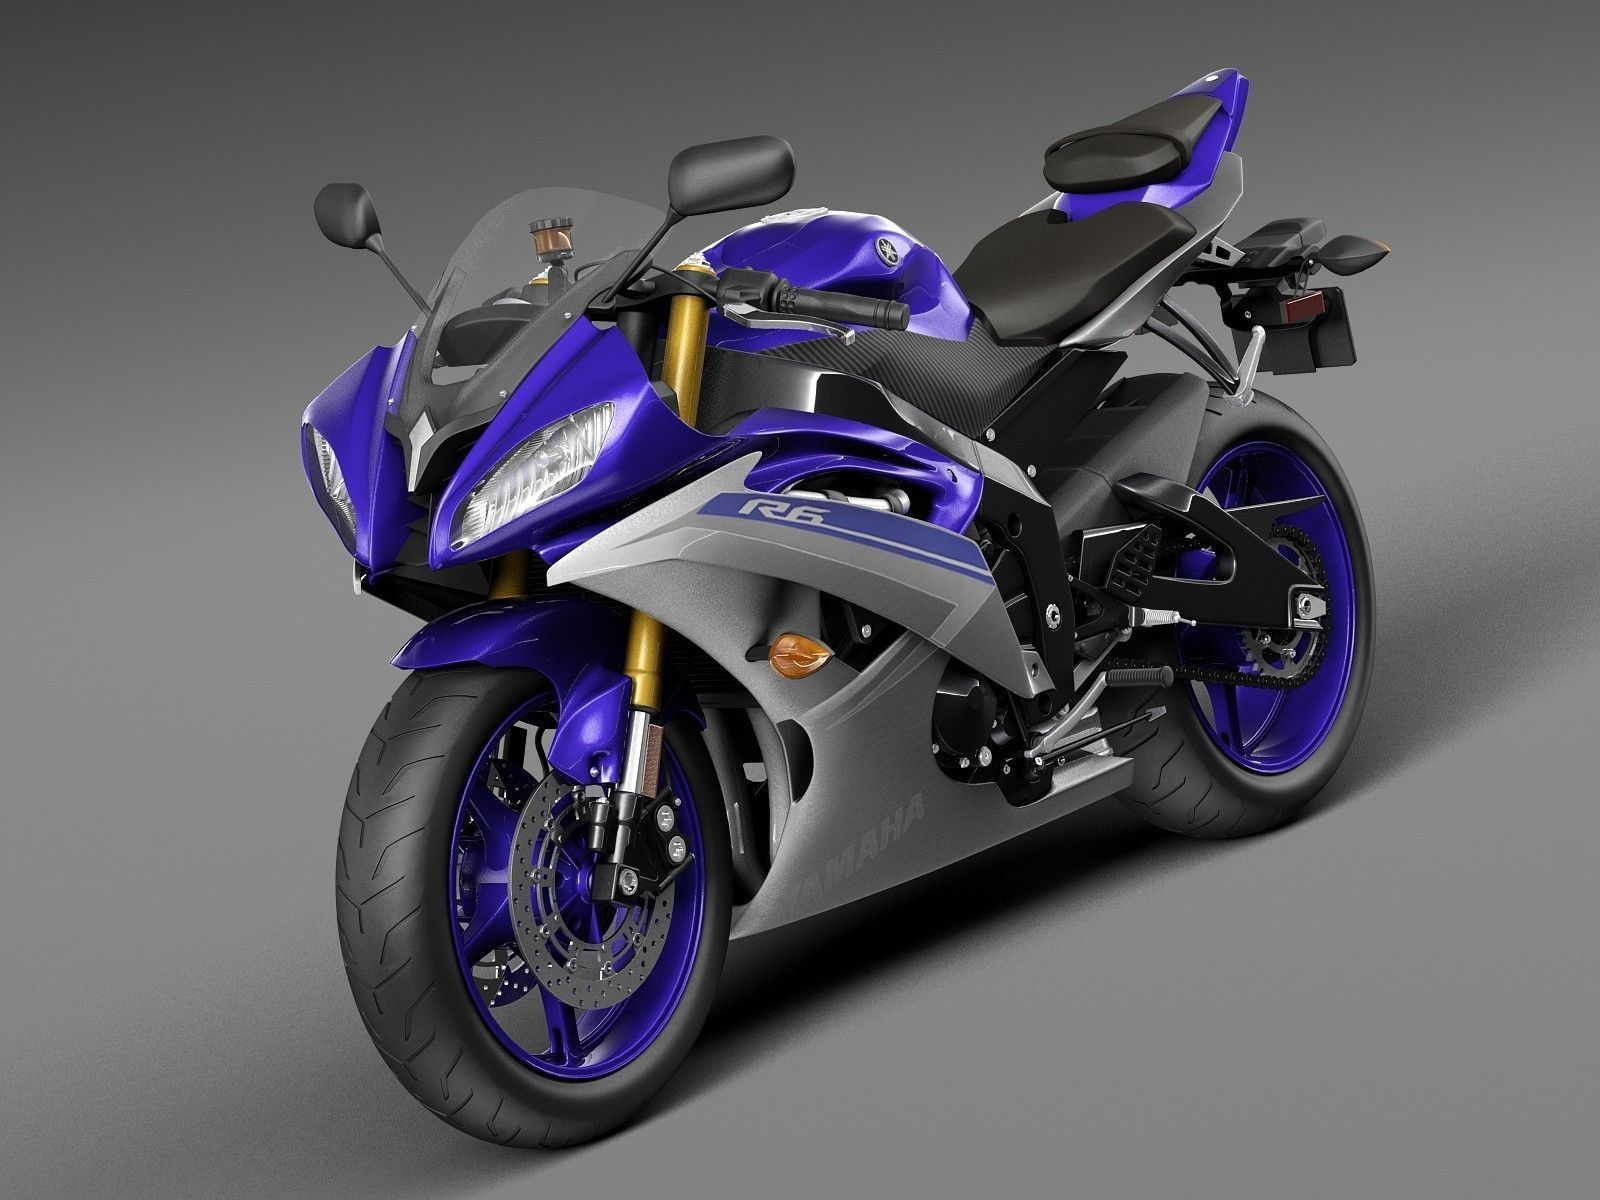 Yamaha yfz r6 2015 3d model max obj 3ds fbx c4d lwo lw lws for 2015 yamaha motorcycle models